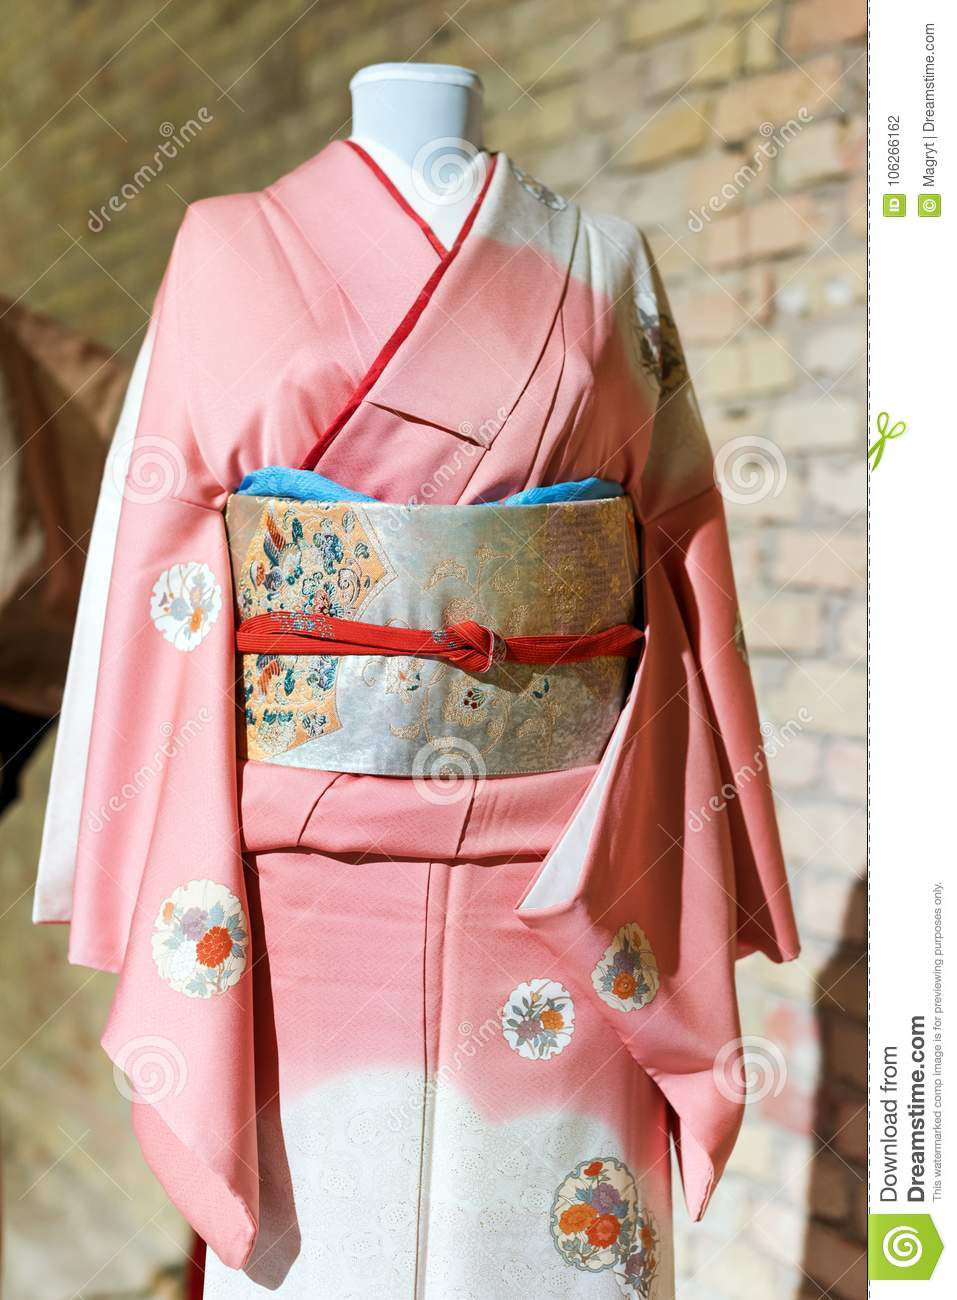 Woman Kimono costume on mannequin. Traditional Japanese Maiko dress. Geisha  clothing